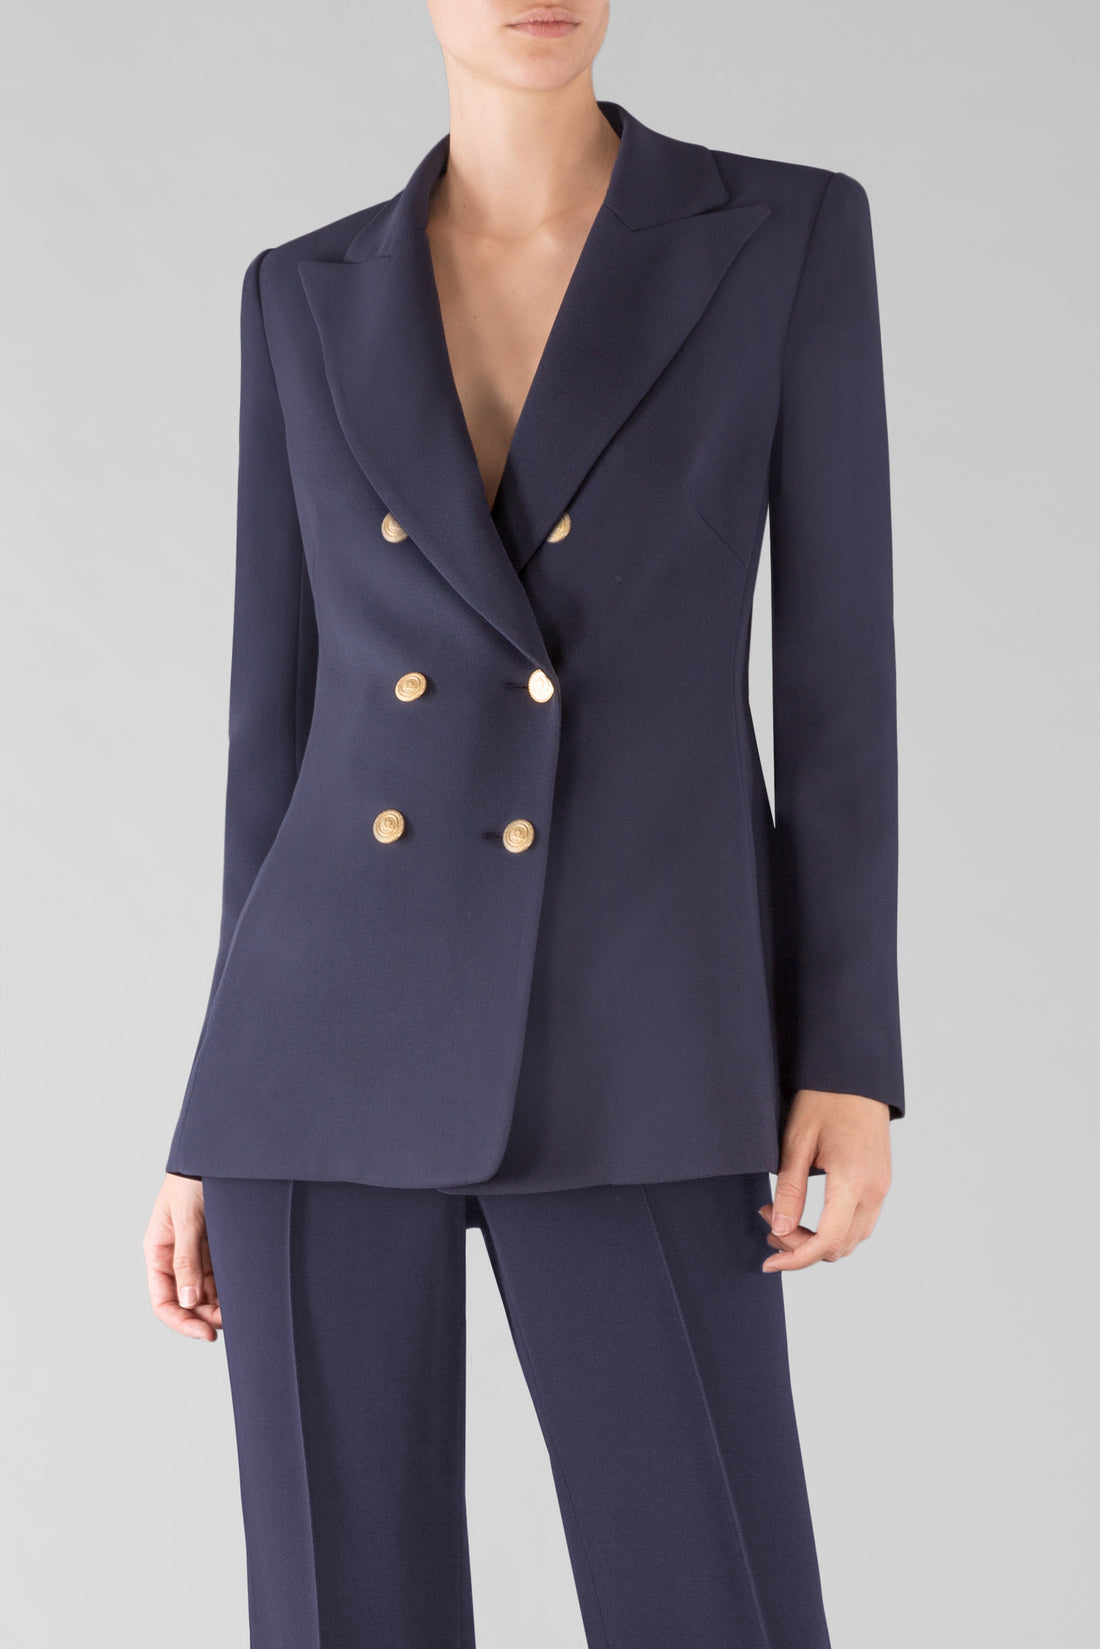 TAILOR MADE FOR YOU JACKET